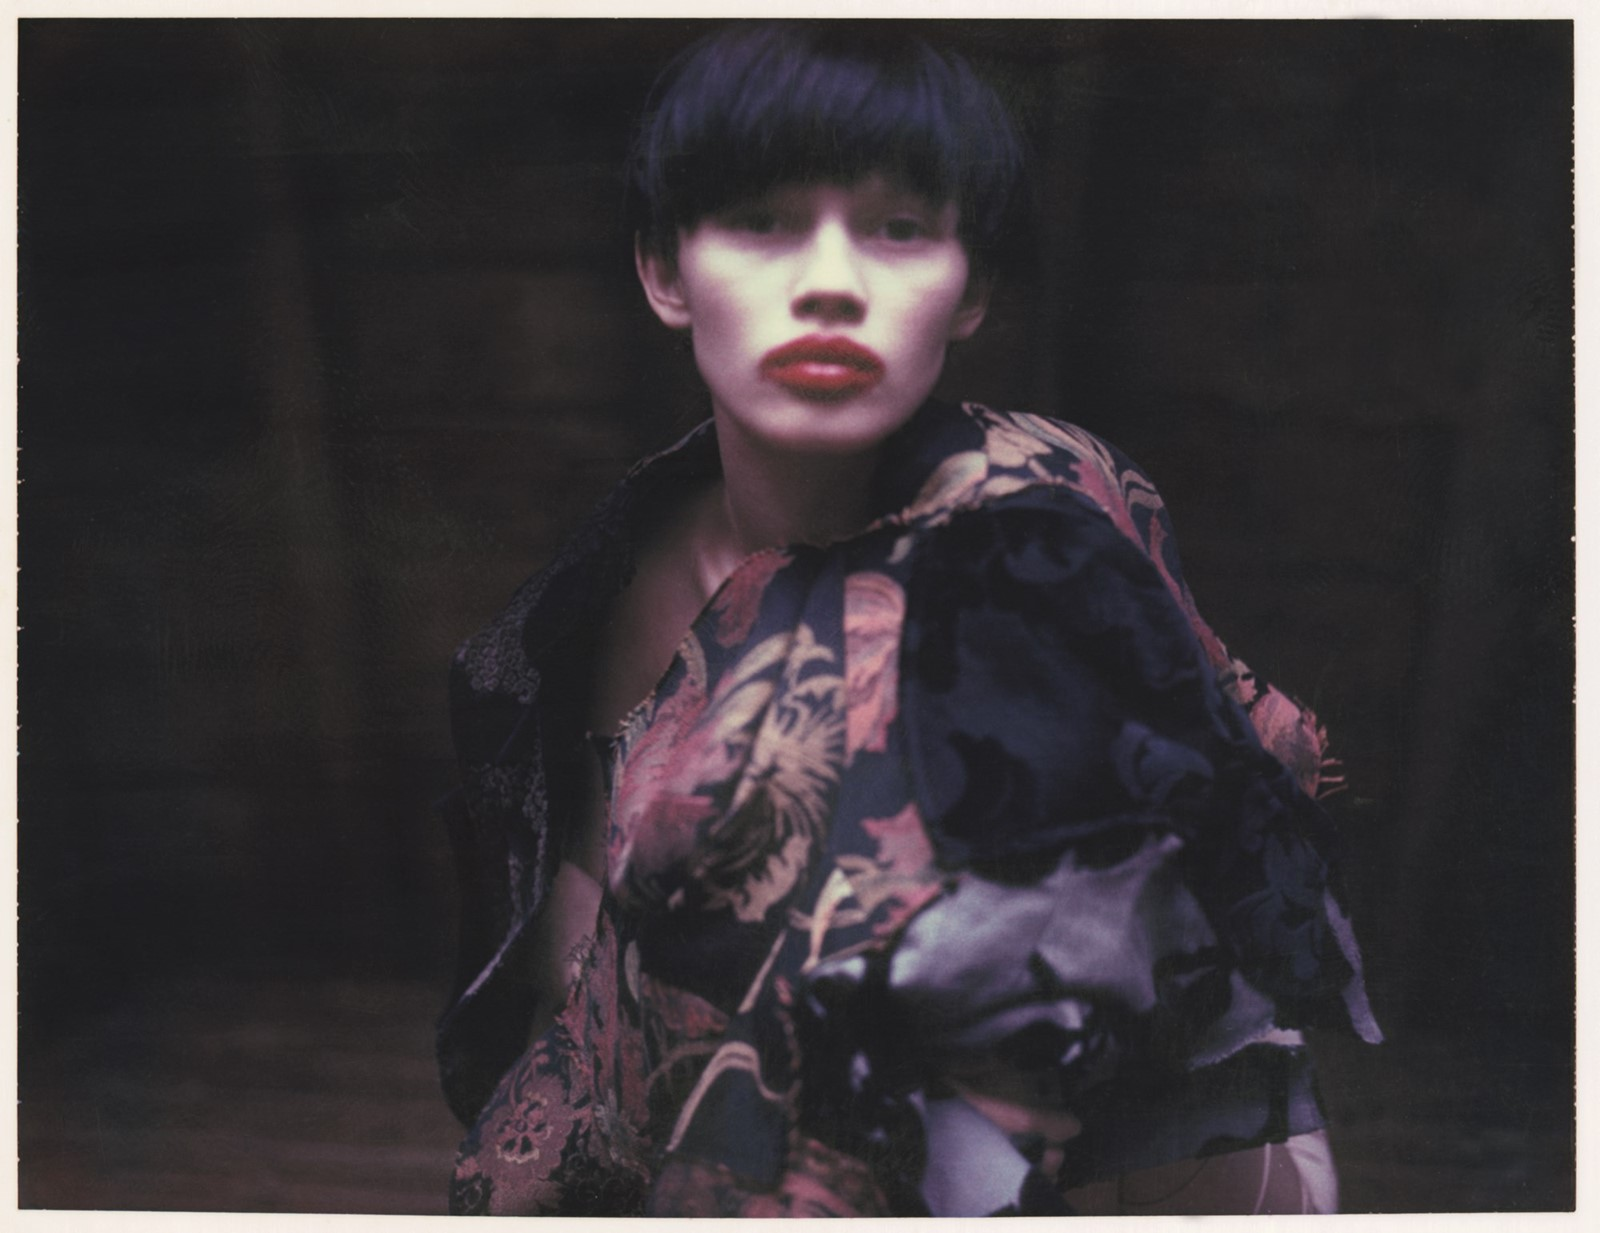 d495ef5aa8e A Portrait of Rei Kawakubo by Those Who Know Her Best